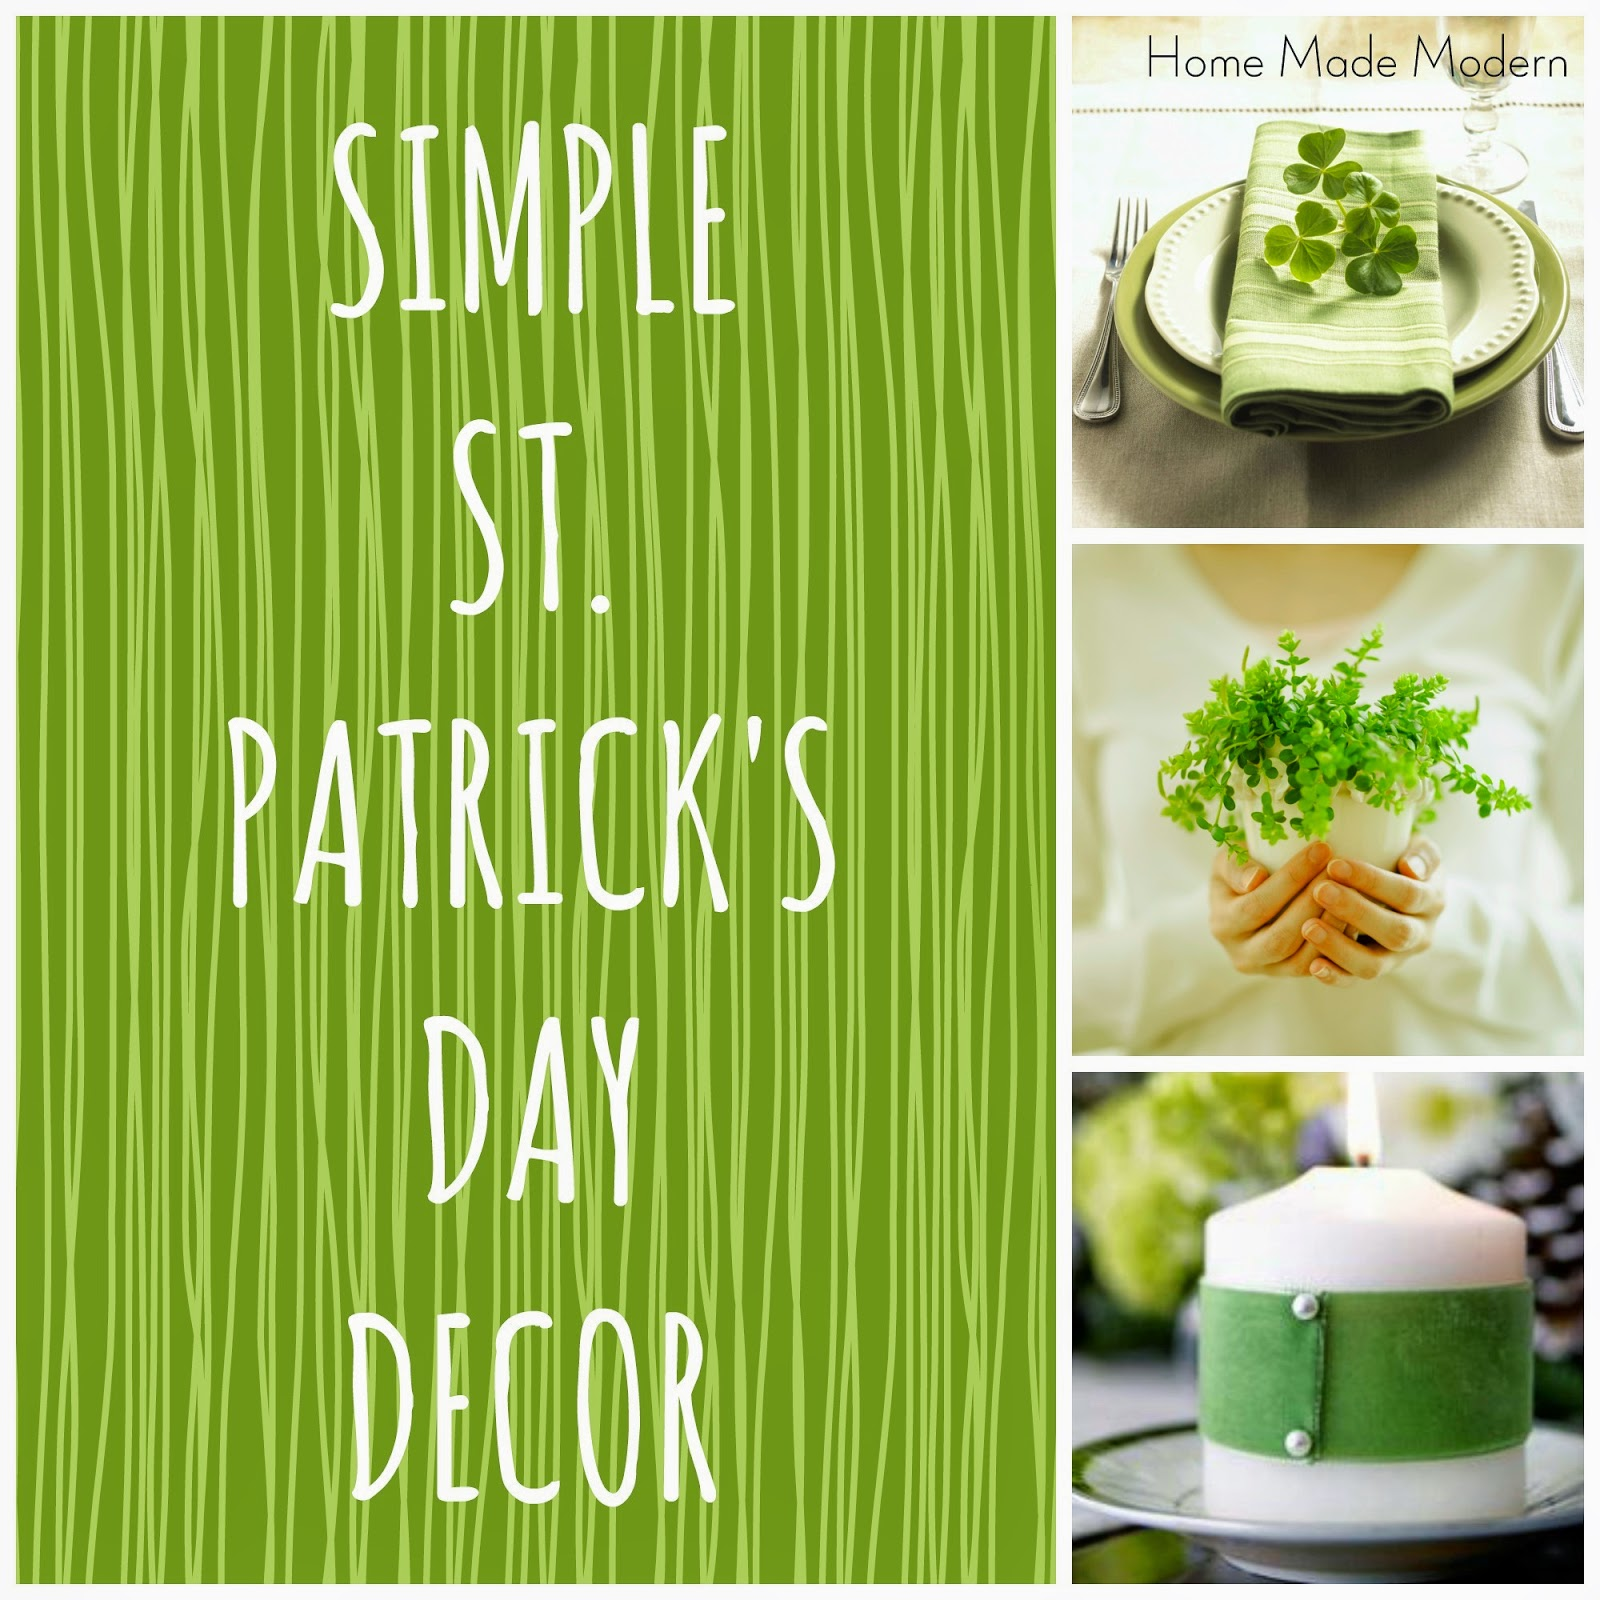 decor day decorations valentine dollar s youtube patricks tree st watch patty